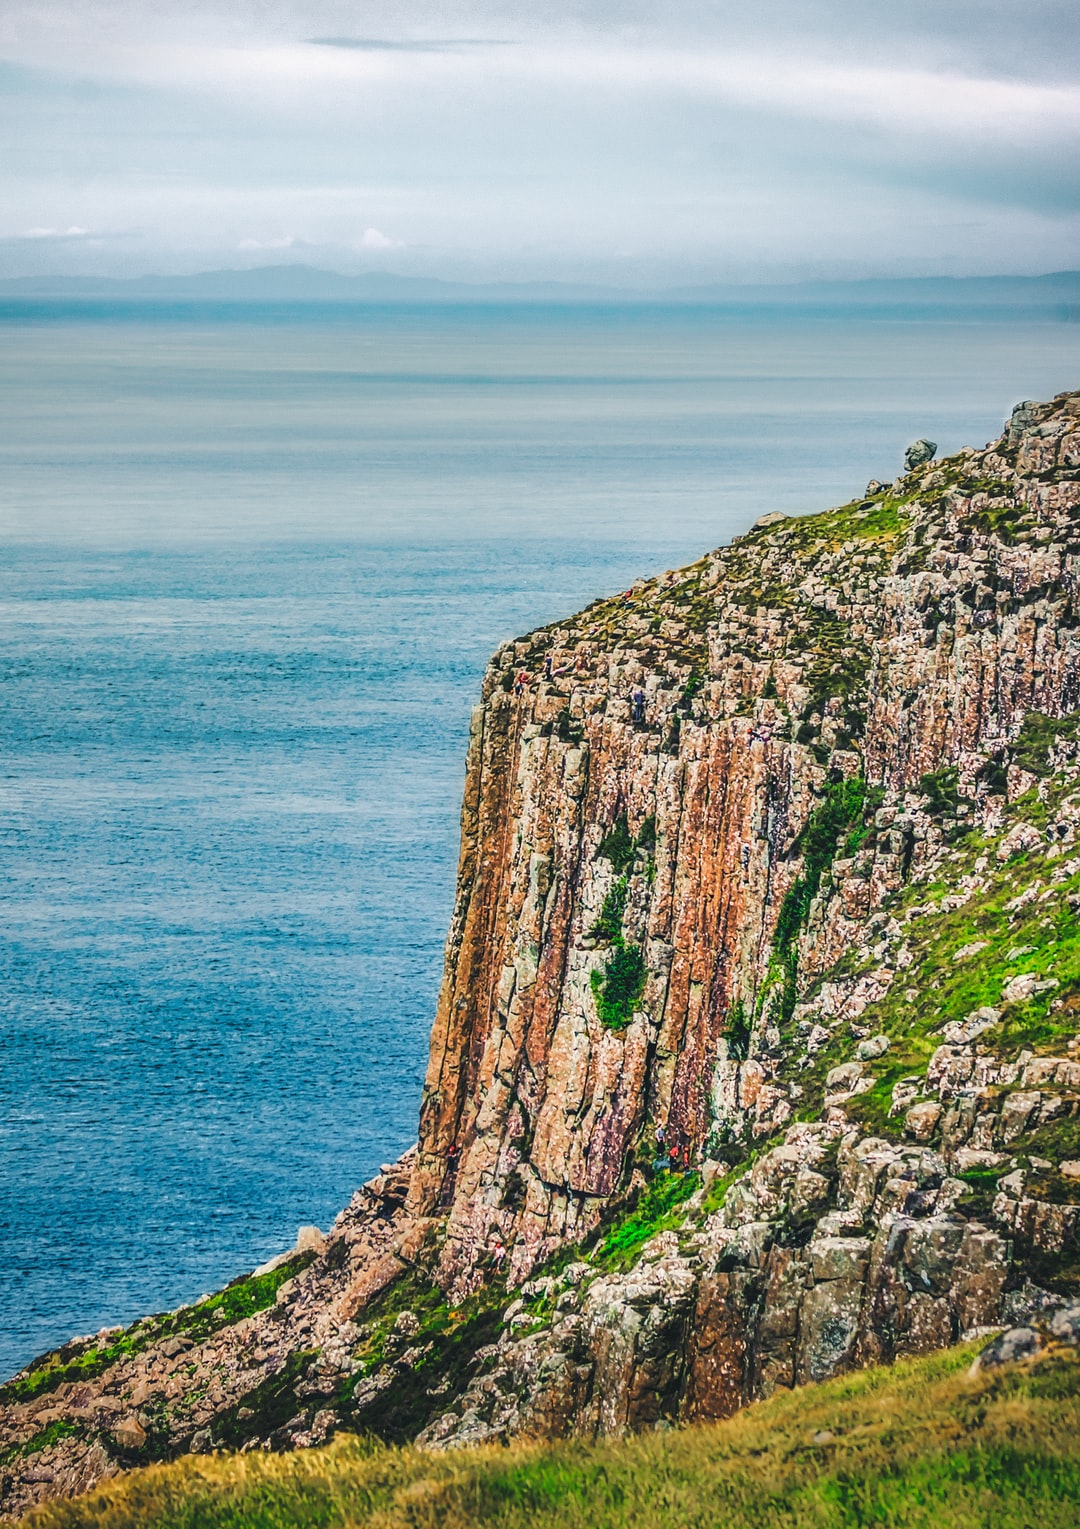 """The volcanically formed hexagonal rocks known as """"chimney stacks"""" on the face of Fair Head in County Antrim overlooking the North Atlantic. Rock climbers can be seen on the cliff face, and the coast of Scotland can be seen on the horizon (Jun., 2020)."""